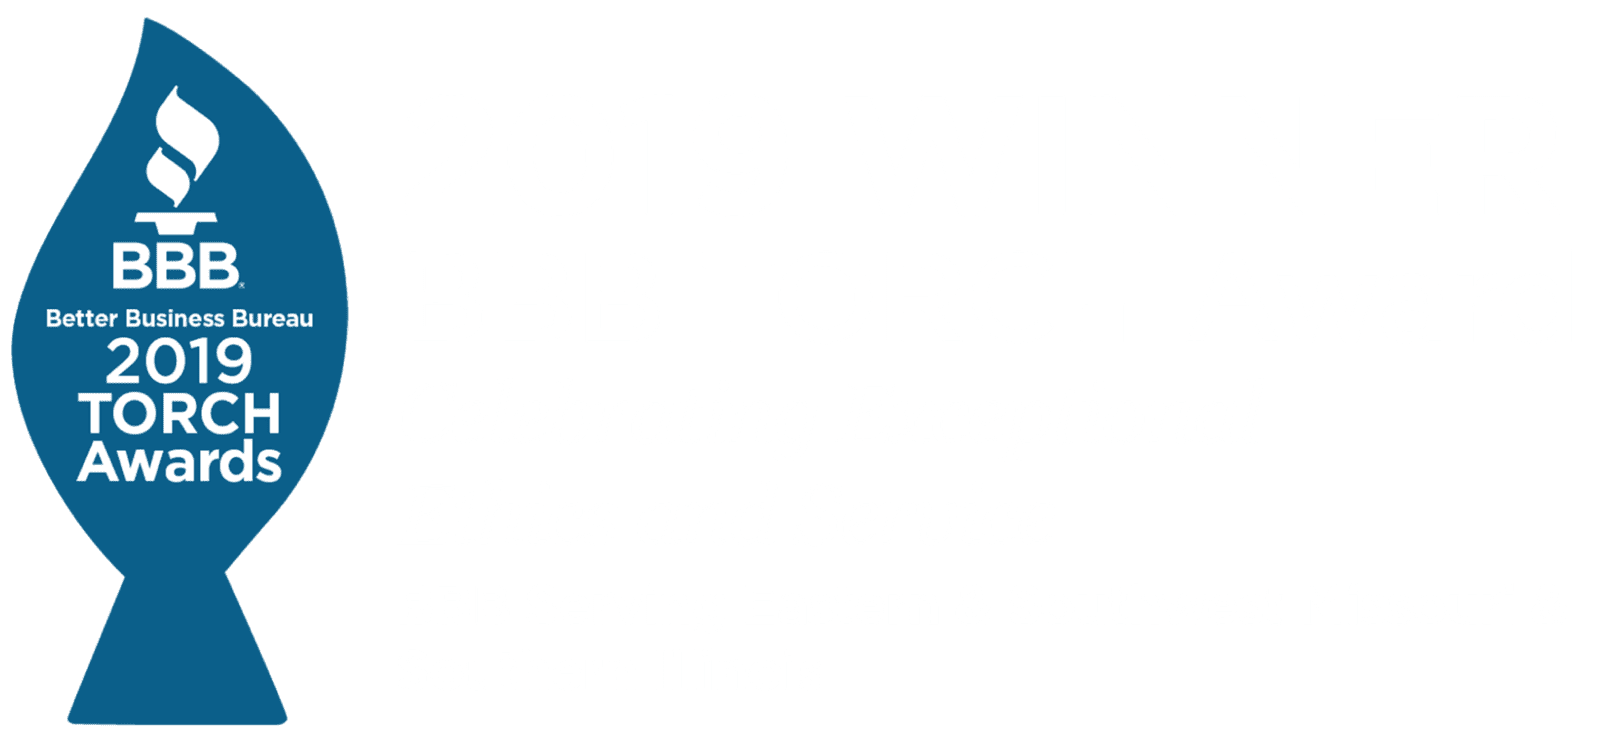 2019 BBB Torch Award Winner logo